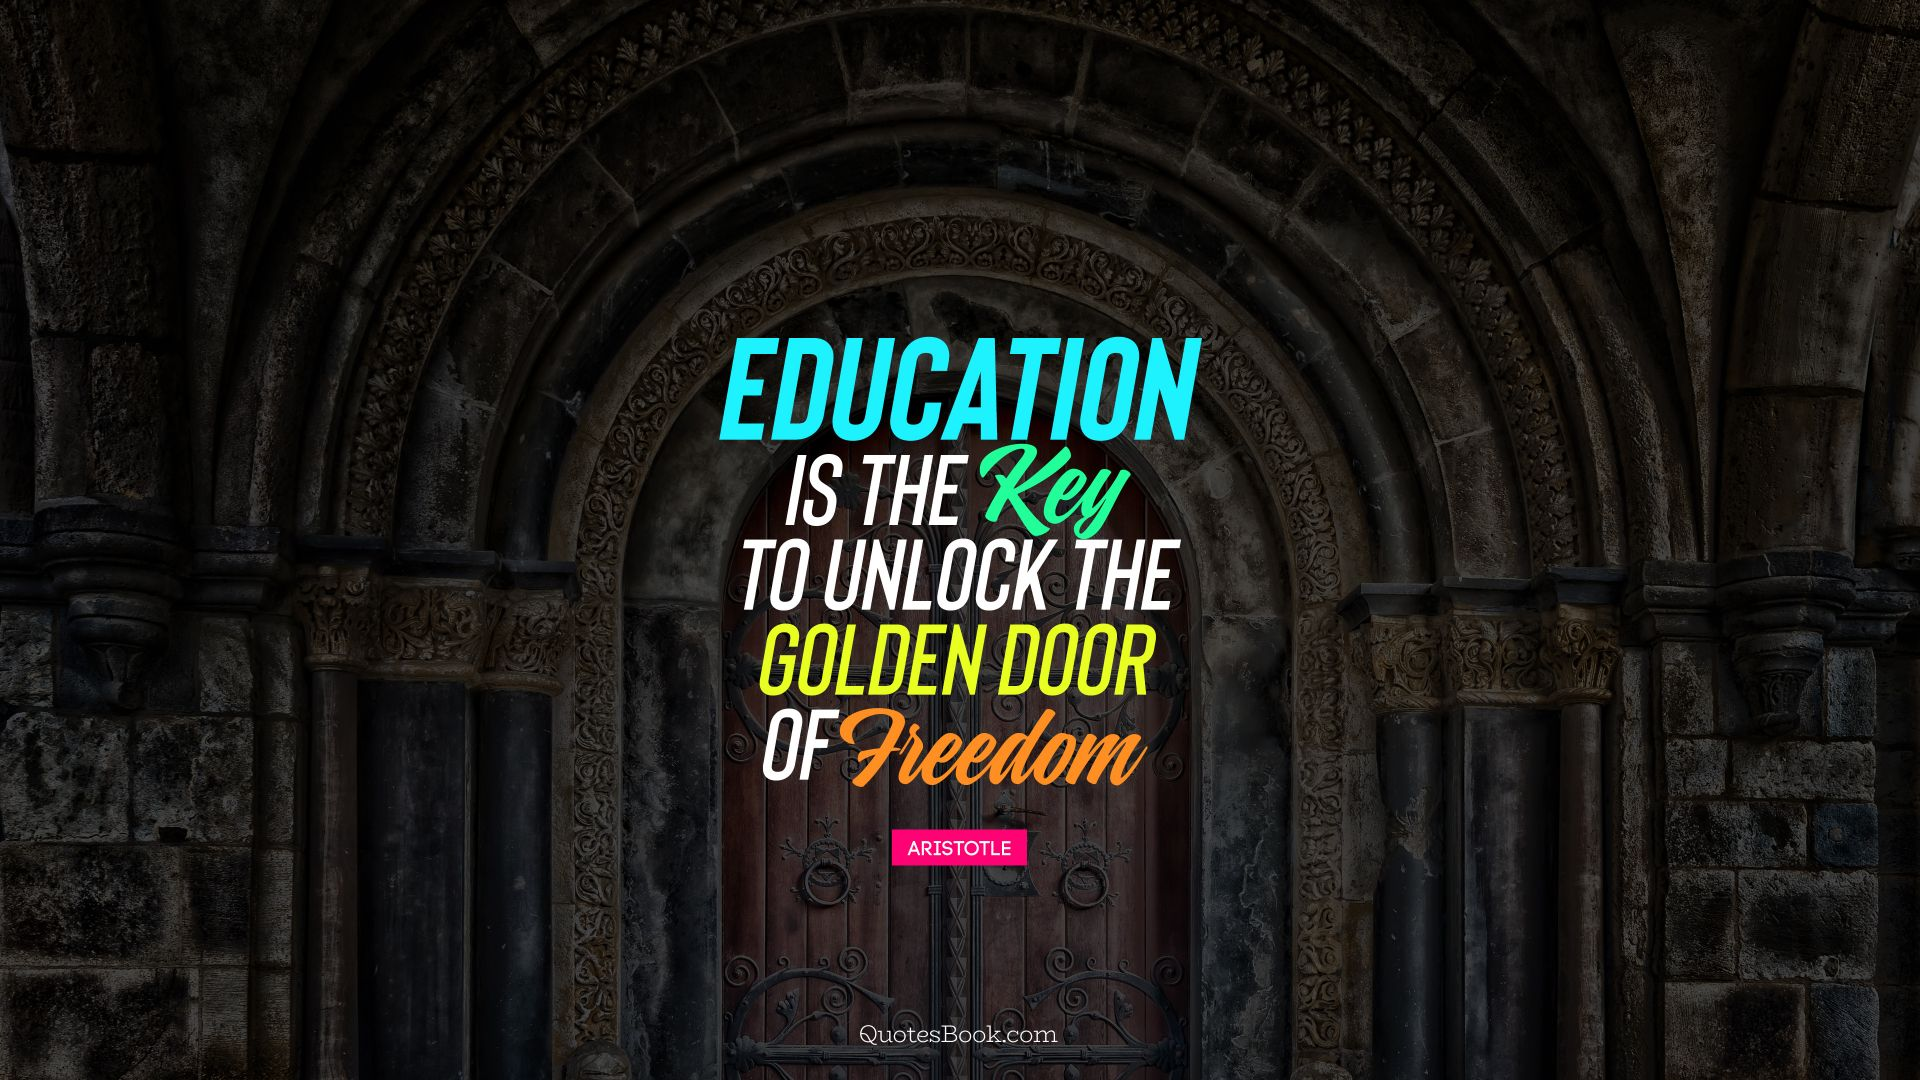 Education is the key to unlock the golden door of freedom. - Quote by Aristotle